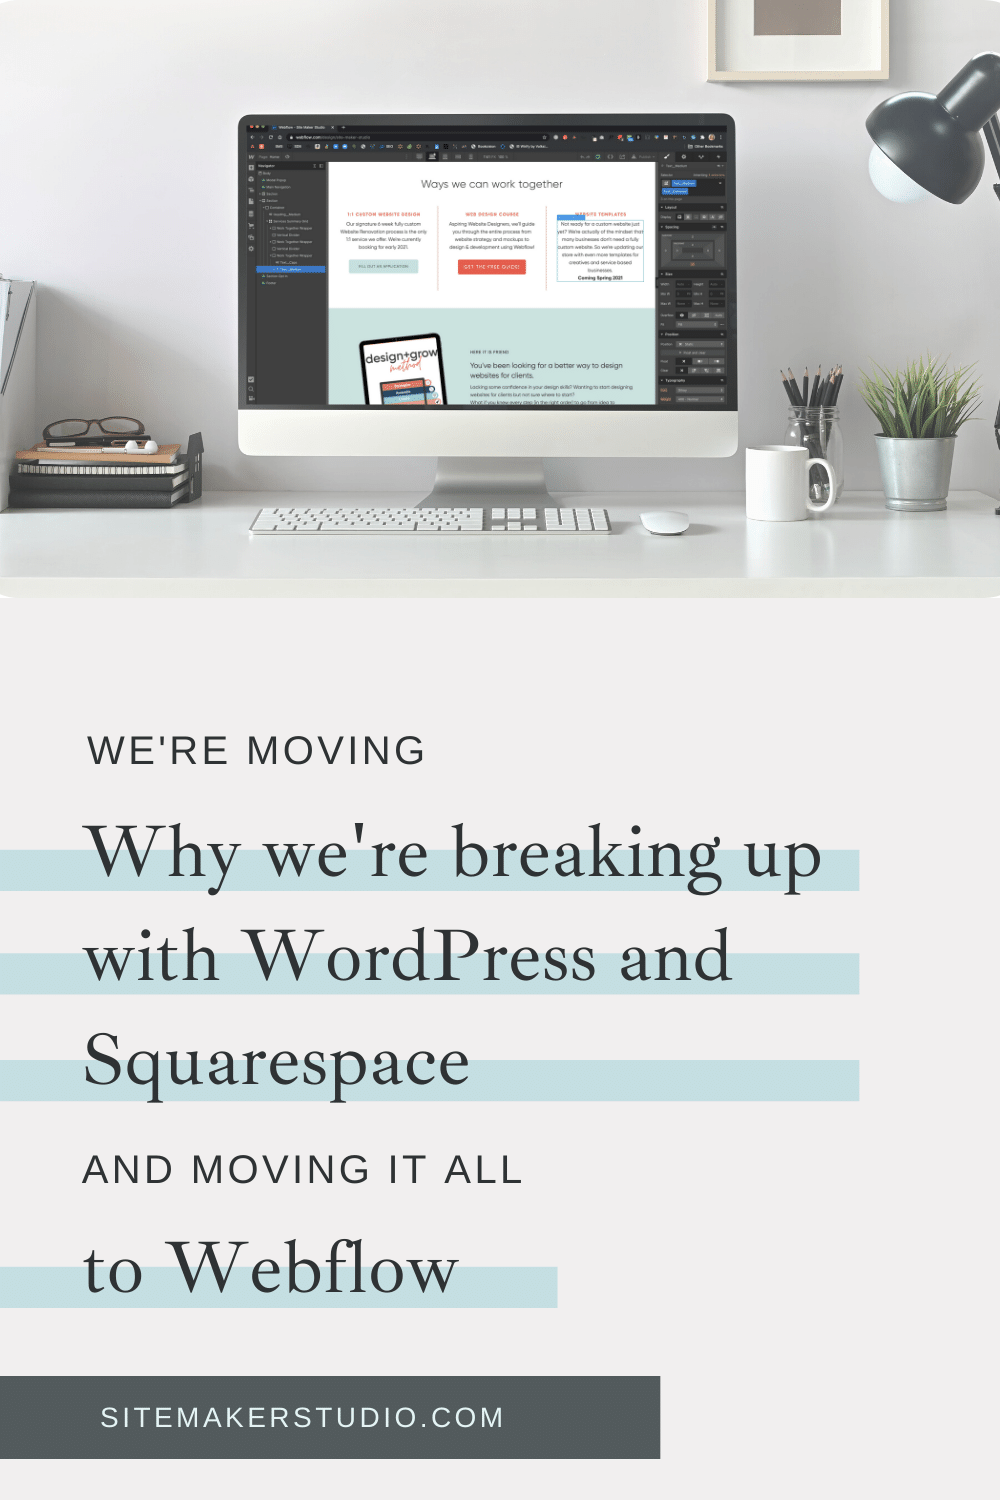 switching to Webflow from WordPress and Squarespace